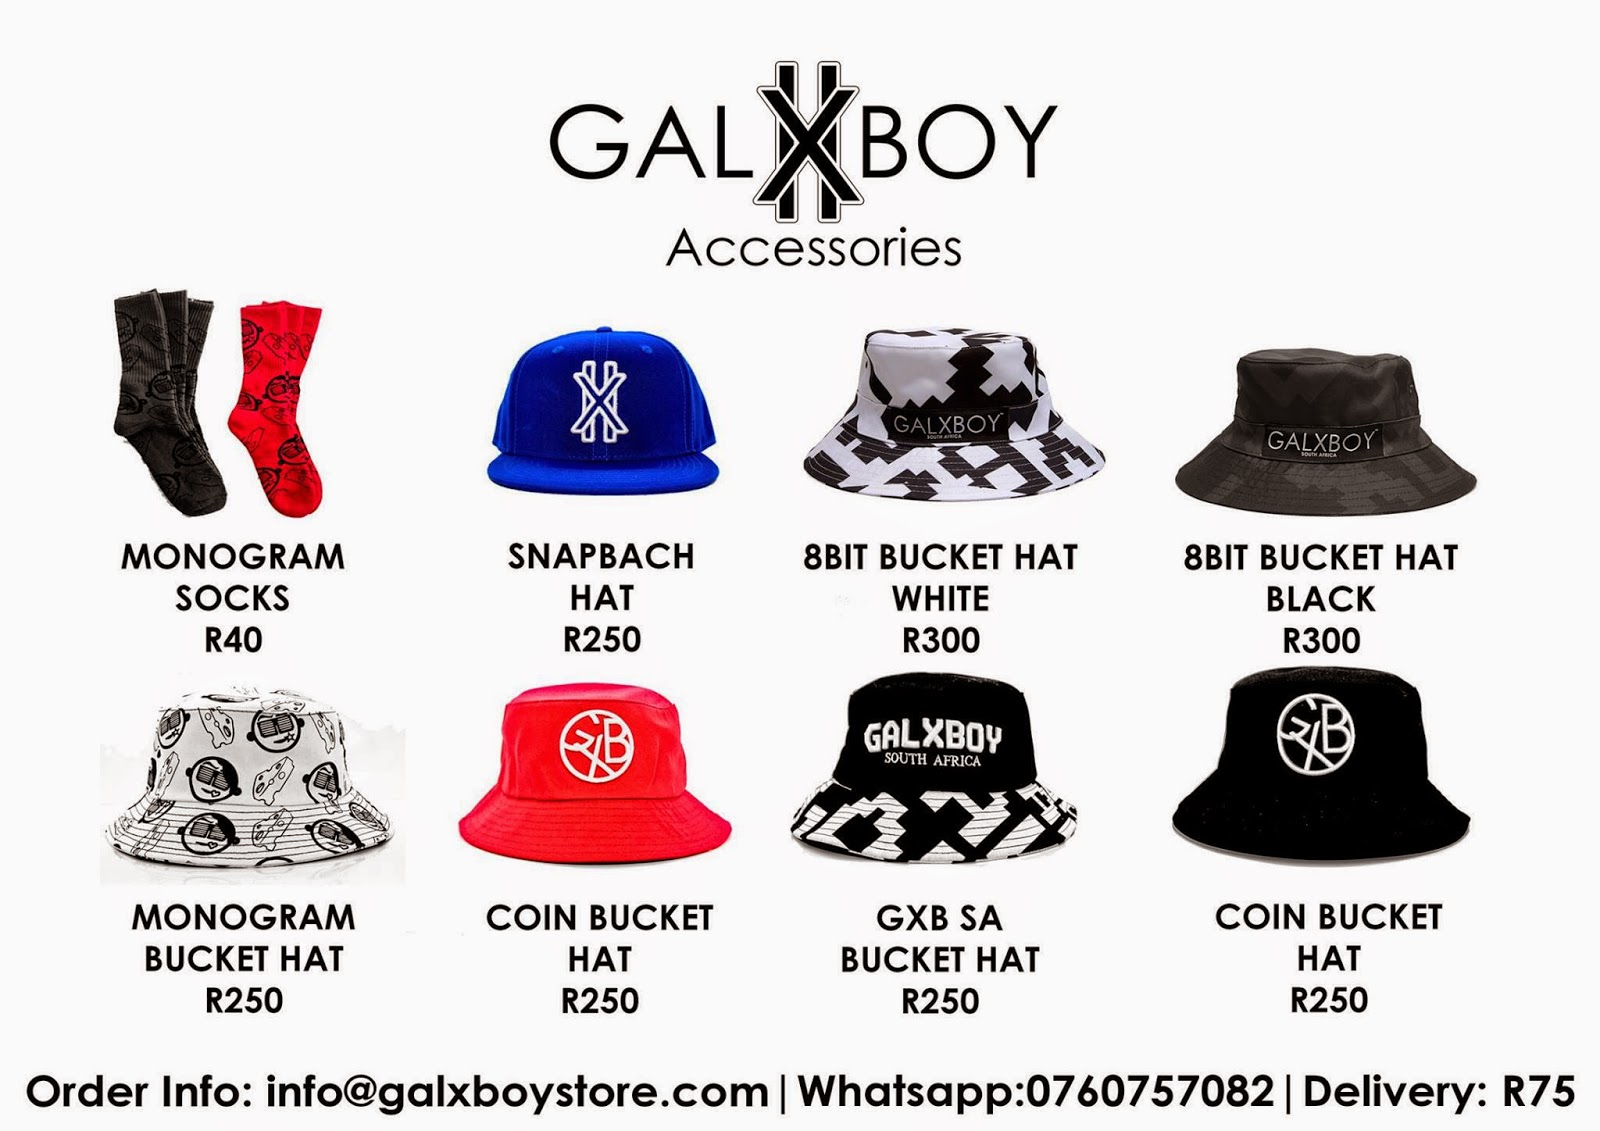 dbbc73b1533ff Swag Craze  Peep The Latest Collection From Galxboy